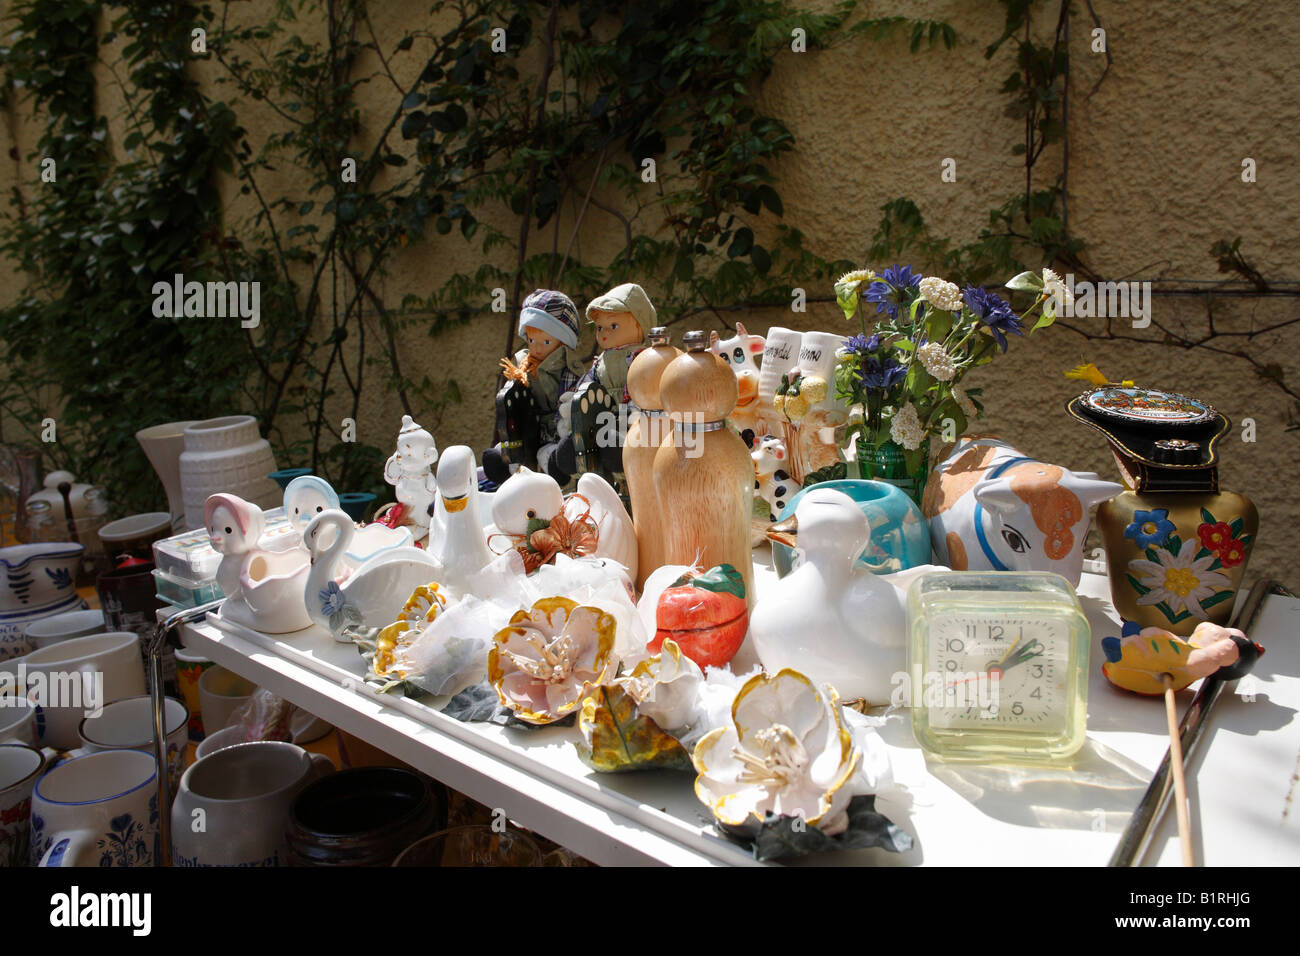 Back-yard fleamarket, Munich-Haidhausen, Upper Bavaria, Germany, Europe - Stock Image